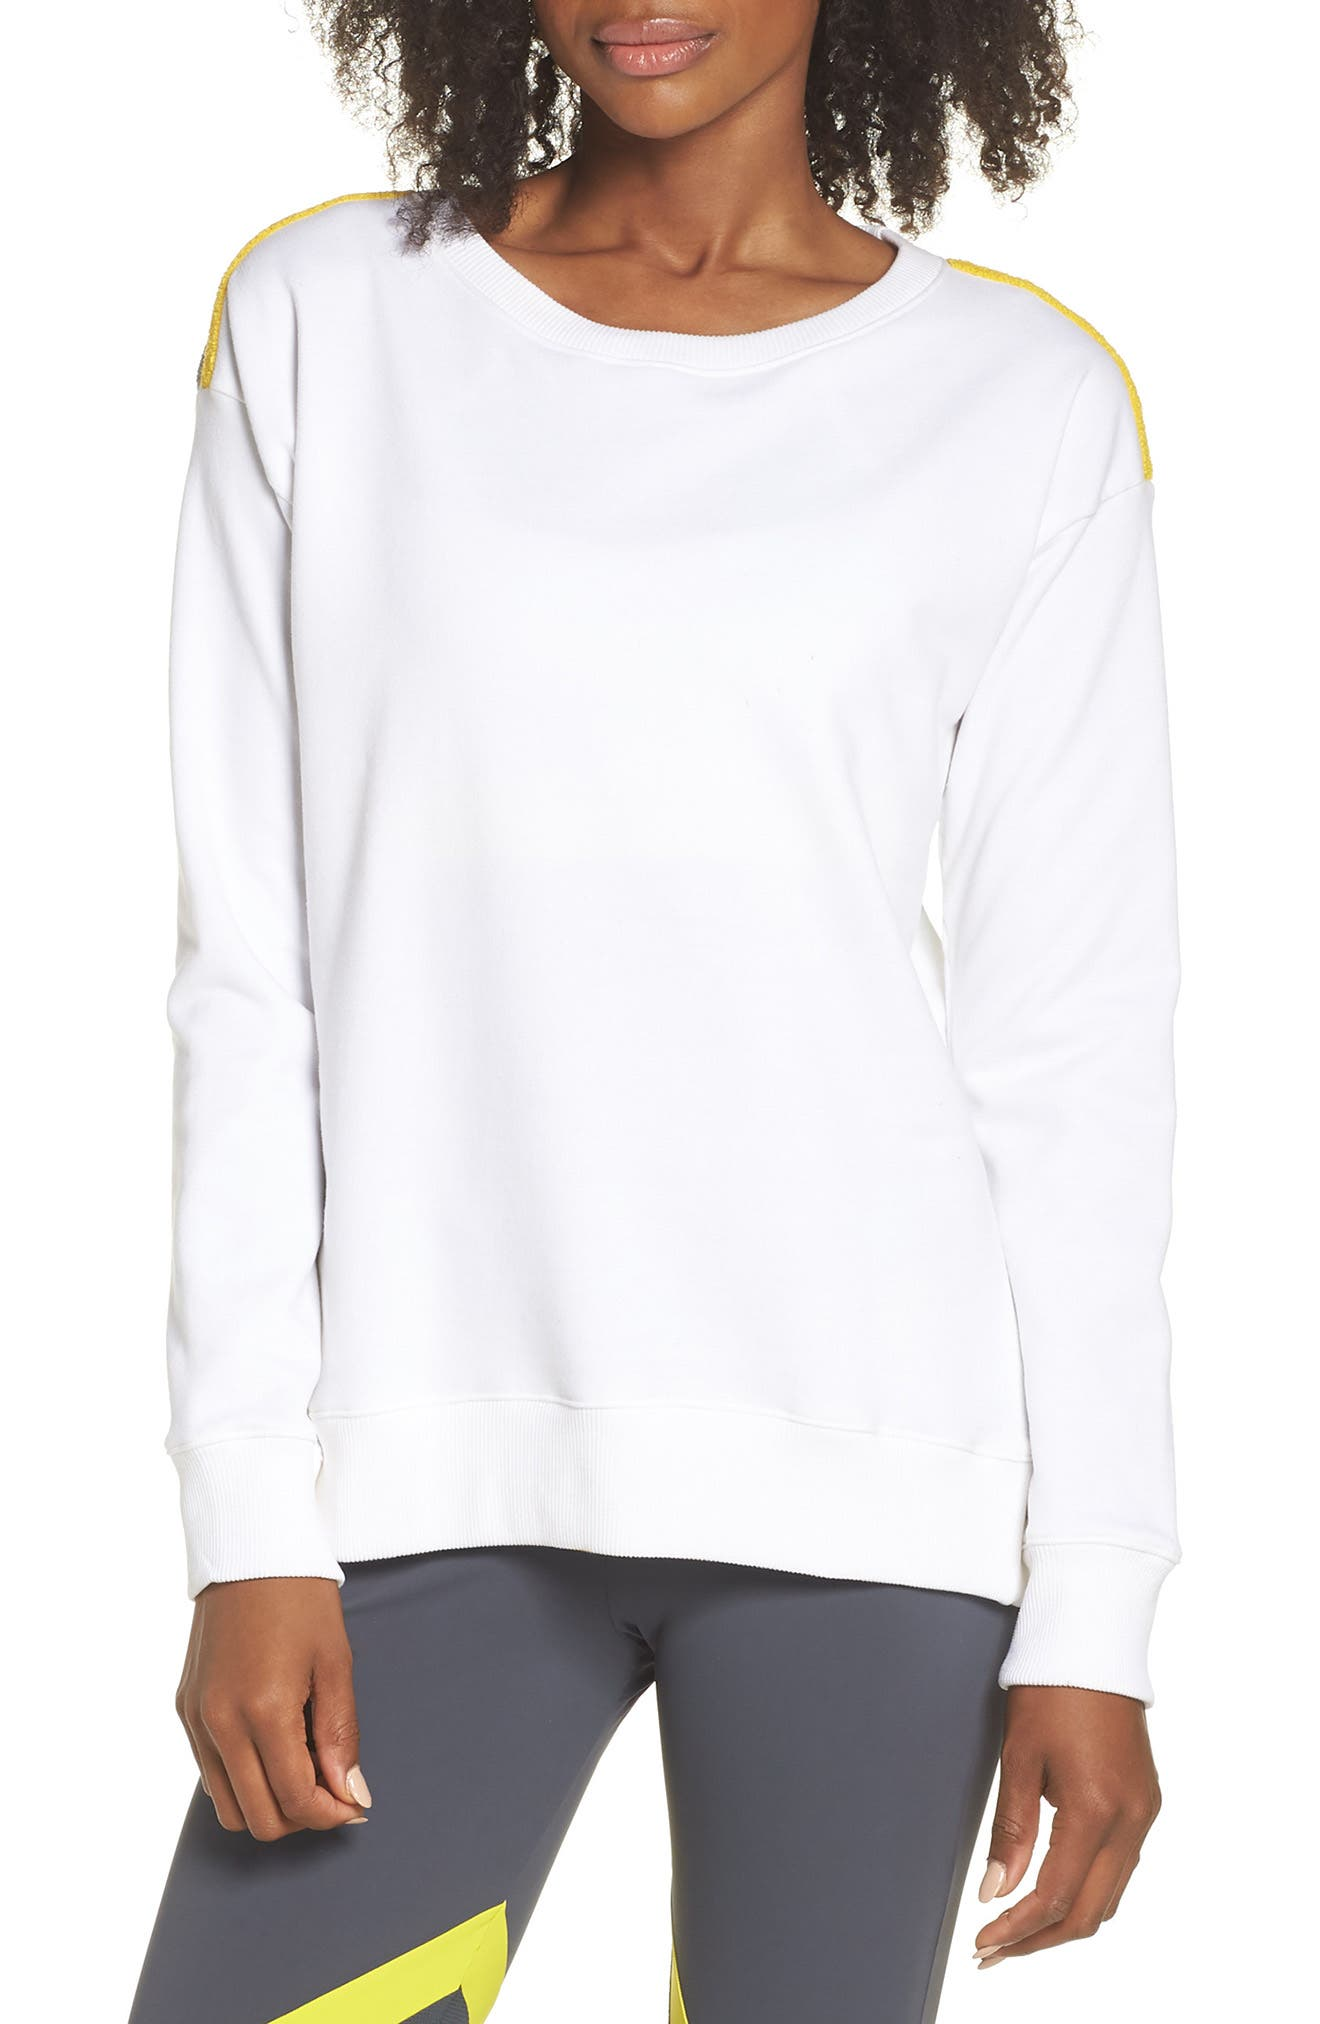 BoomBoom Athletica Tricolor Shoulder Sweatshirt,                             Main thumbnail 1, color,                             White/ Grey/ Yellow